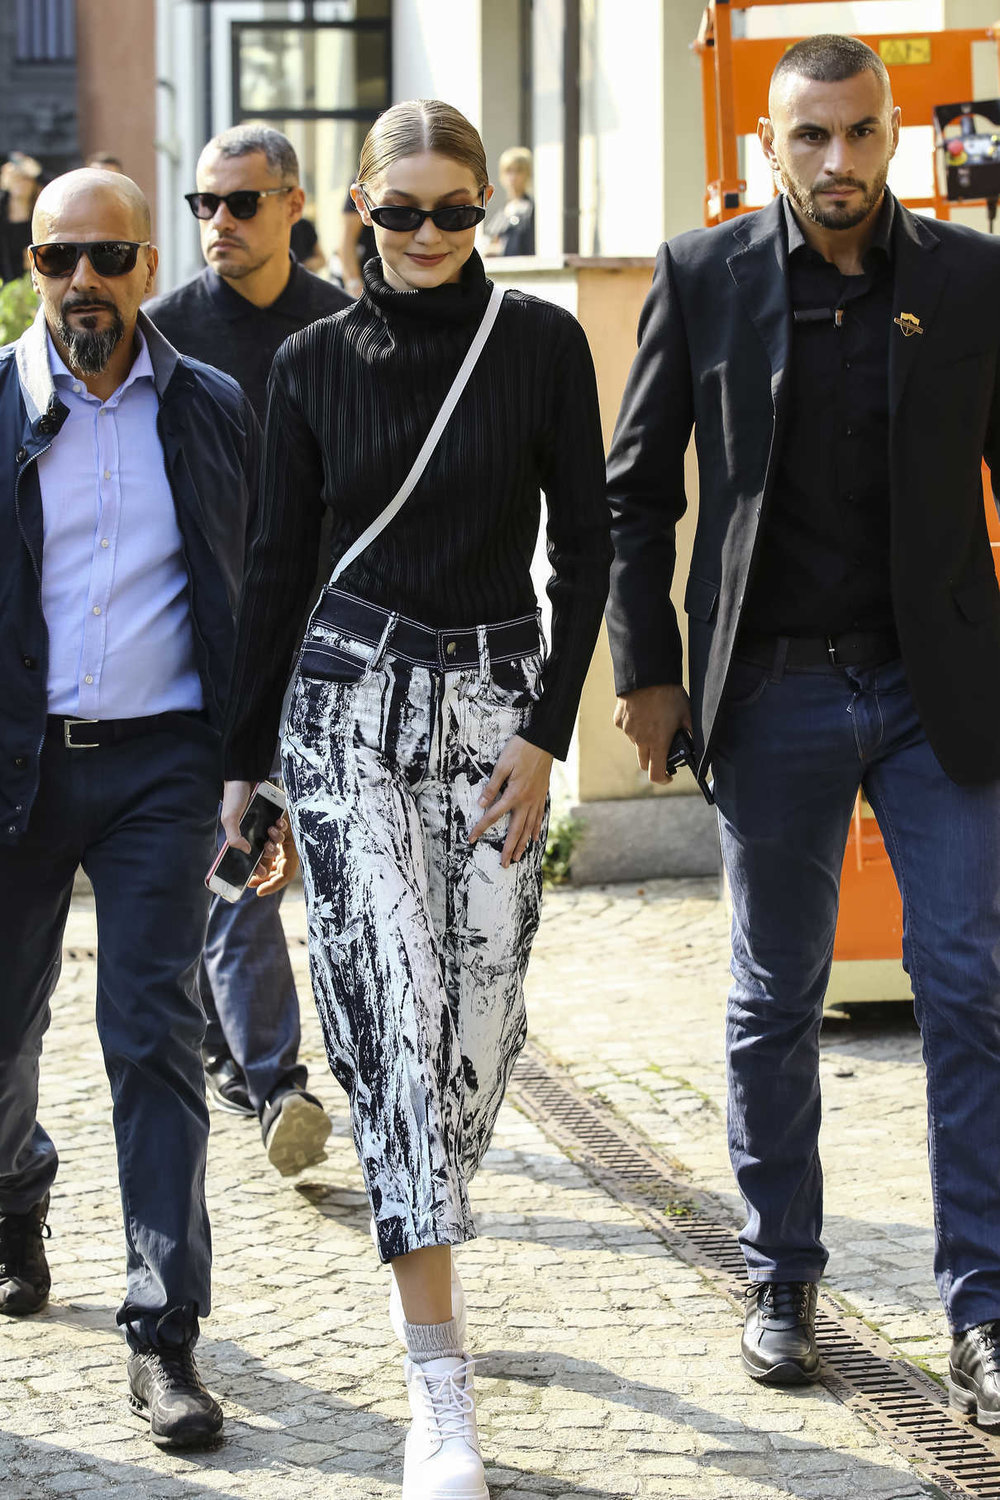 gigi-hadid-leaves-the-max-mara-fashion-show-during-the-milan-fashion-week-in-milan-09-20-2018-5.jpg